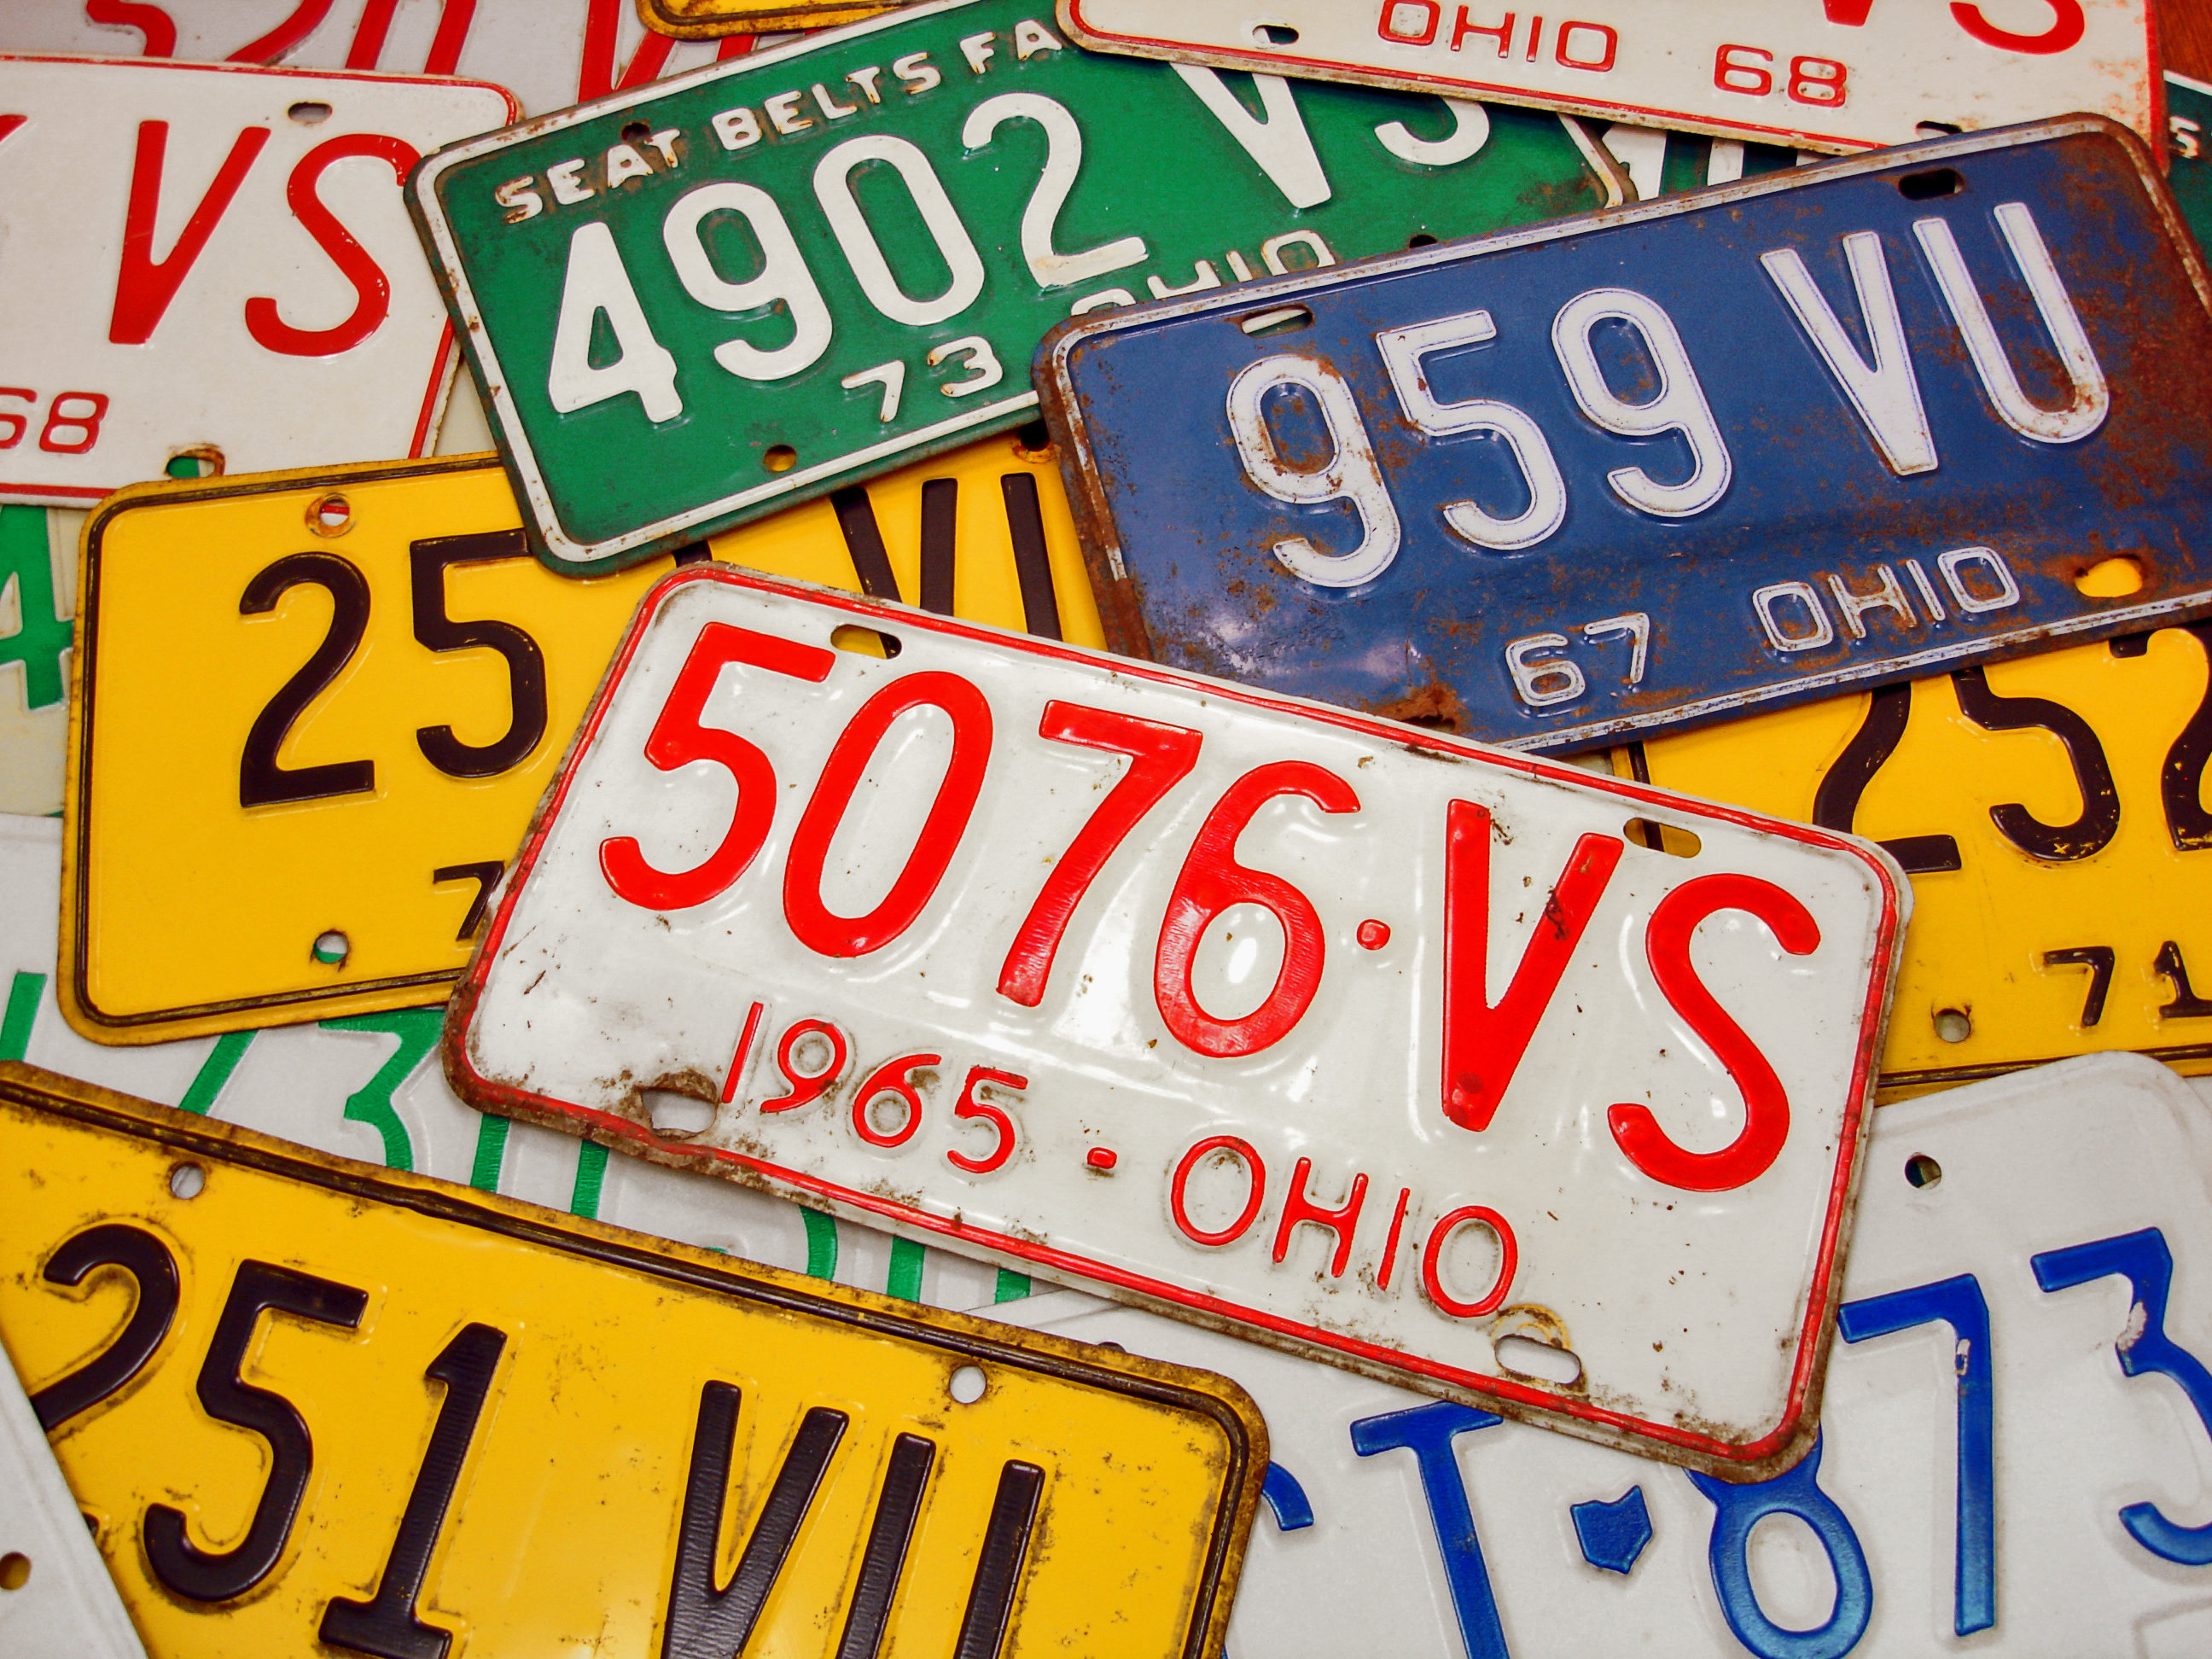 How to Destroy Old License Plates